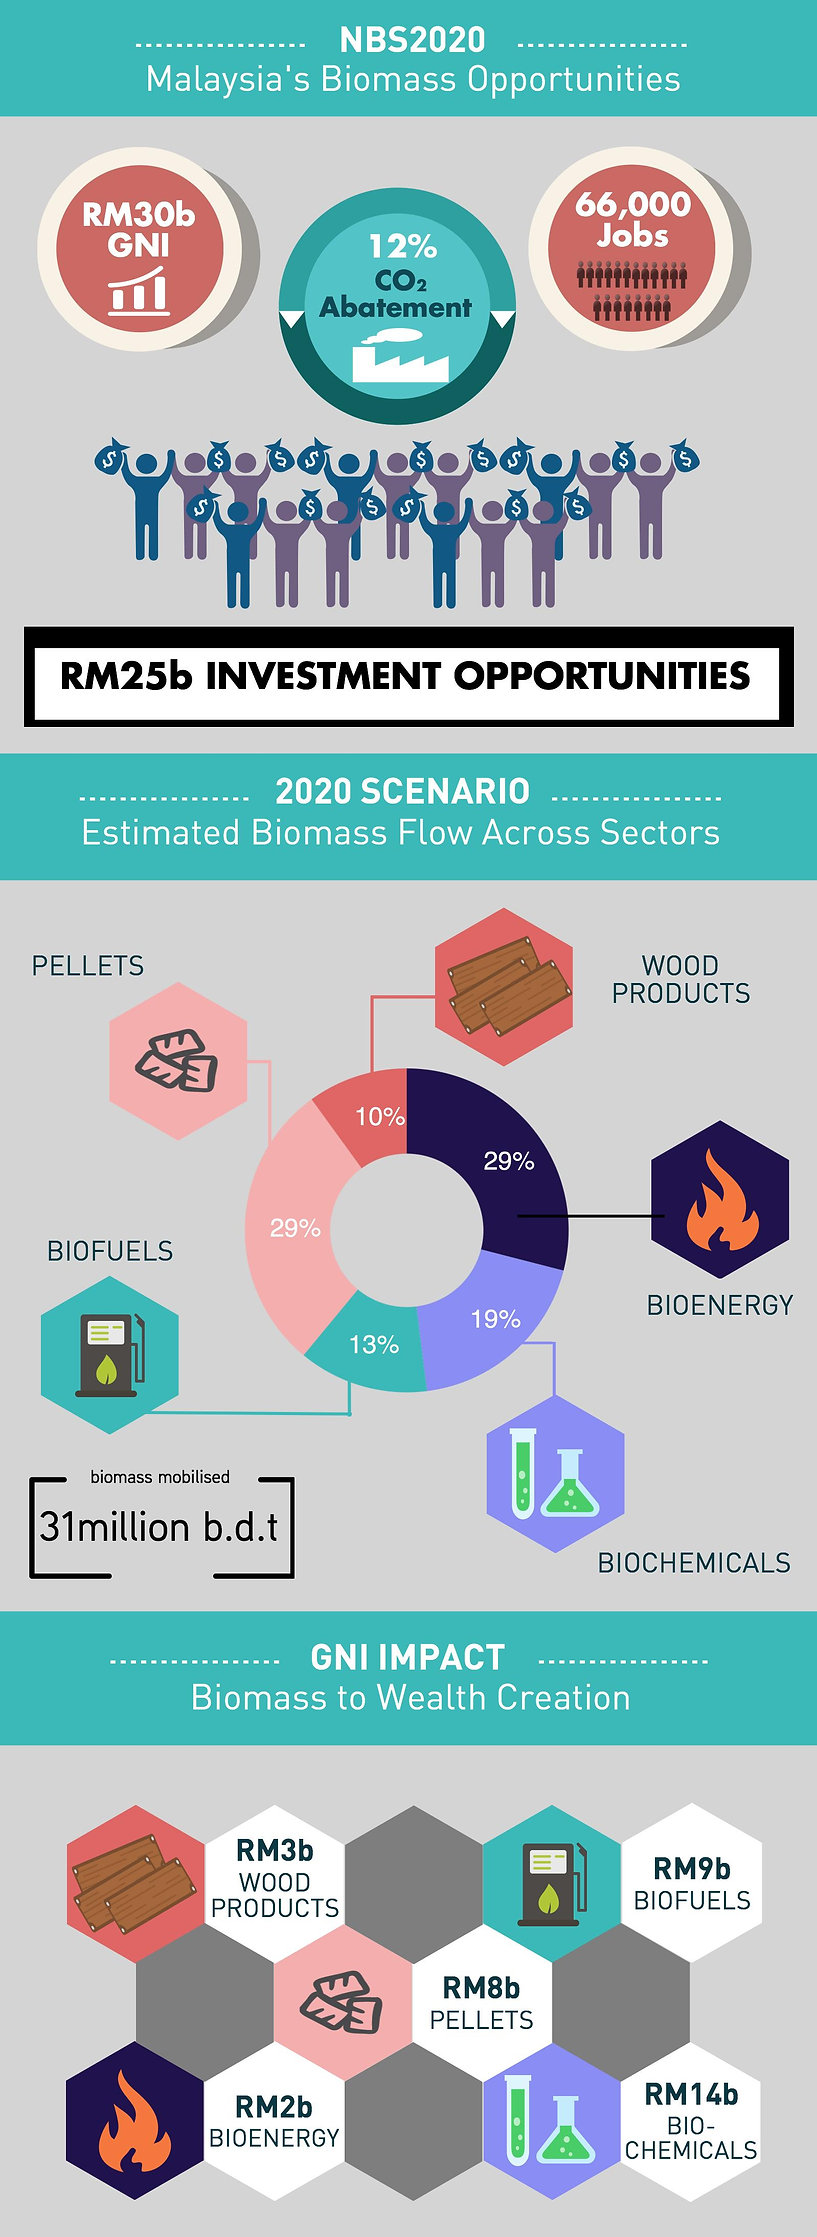 NBS2020, RM30b GNI, 12% Co2 Abatement, 66000 Jobs, 2020 Scenario, Biomass to Wealth Creation, pellets, biofuels, wood products, bioenergy, biochemicals